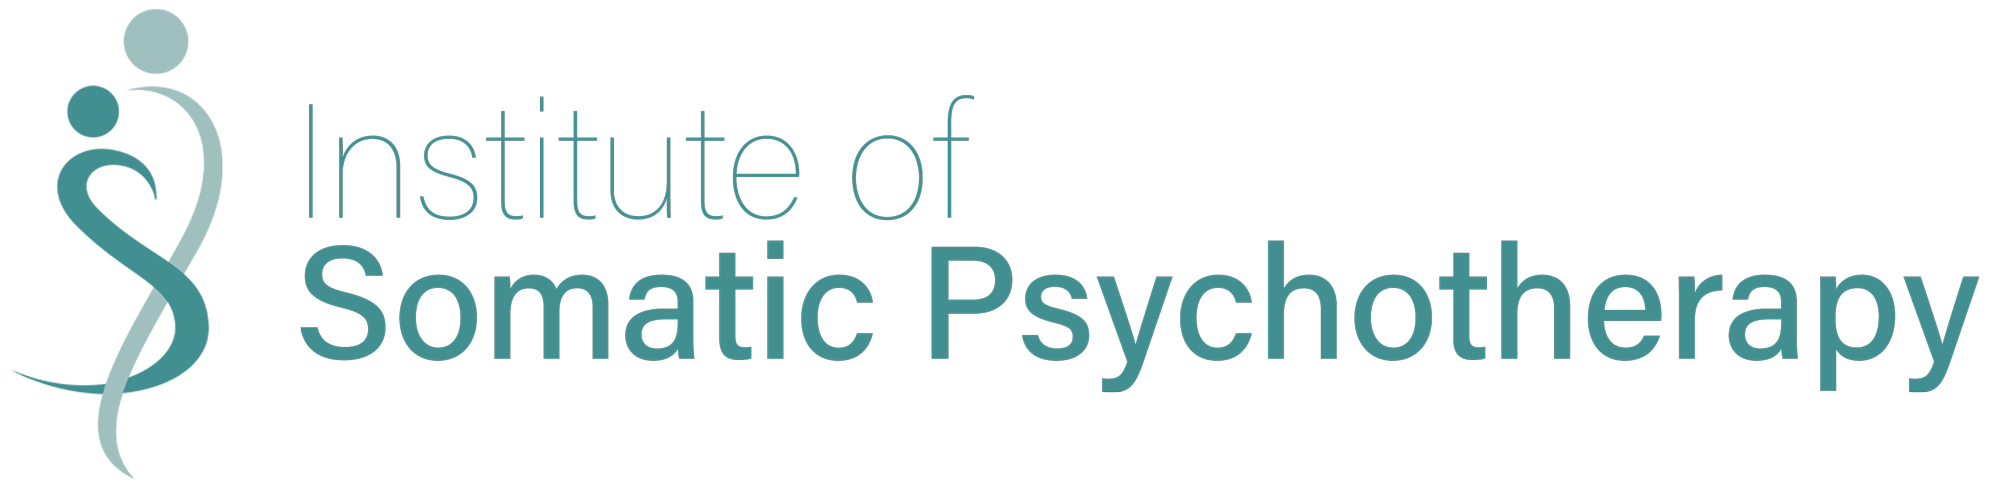 Institute of Somatic Psychotherapy